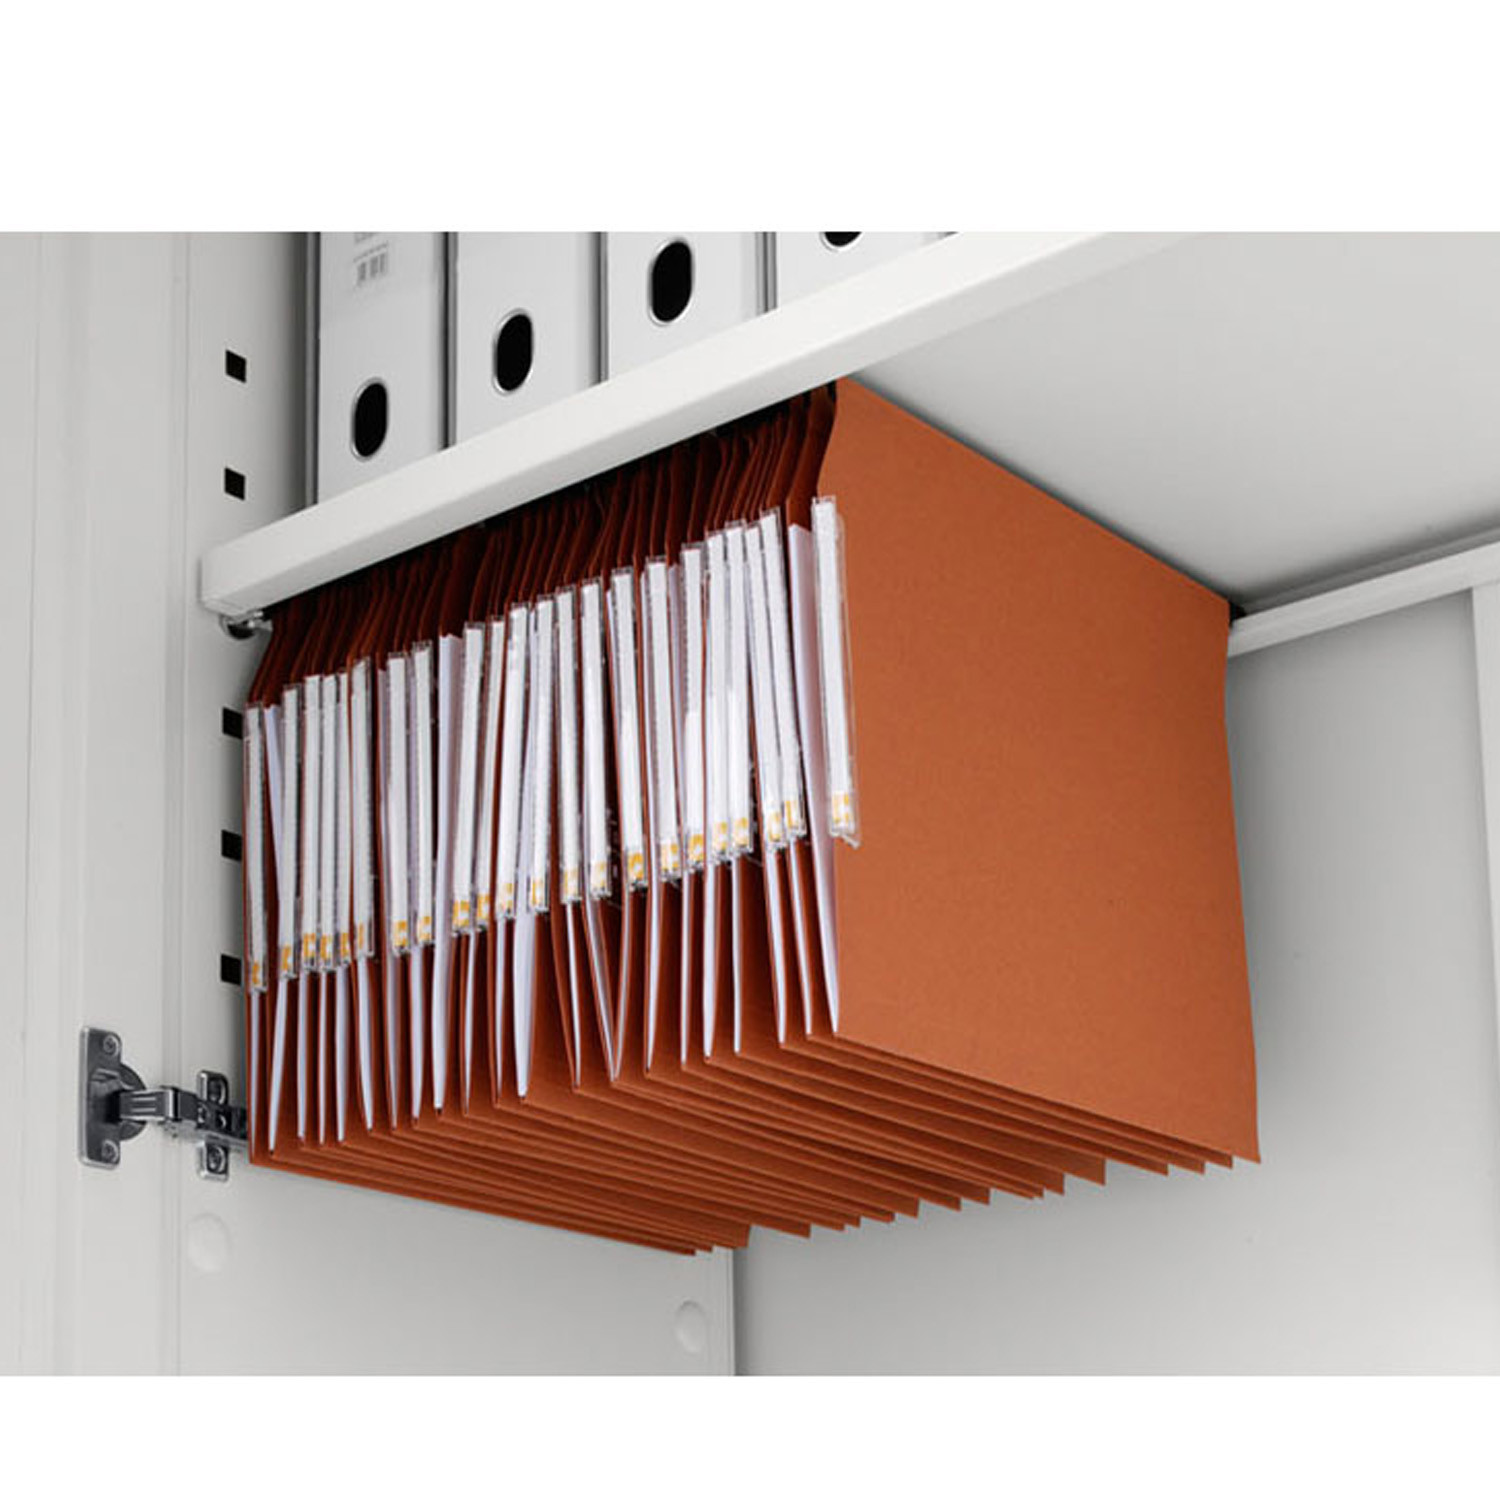 Primo Acoustic Cabinet is equipped with shelves to hold hanging files